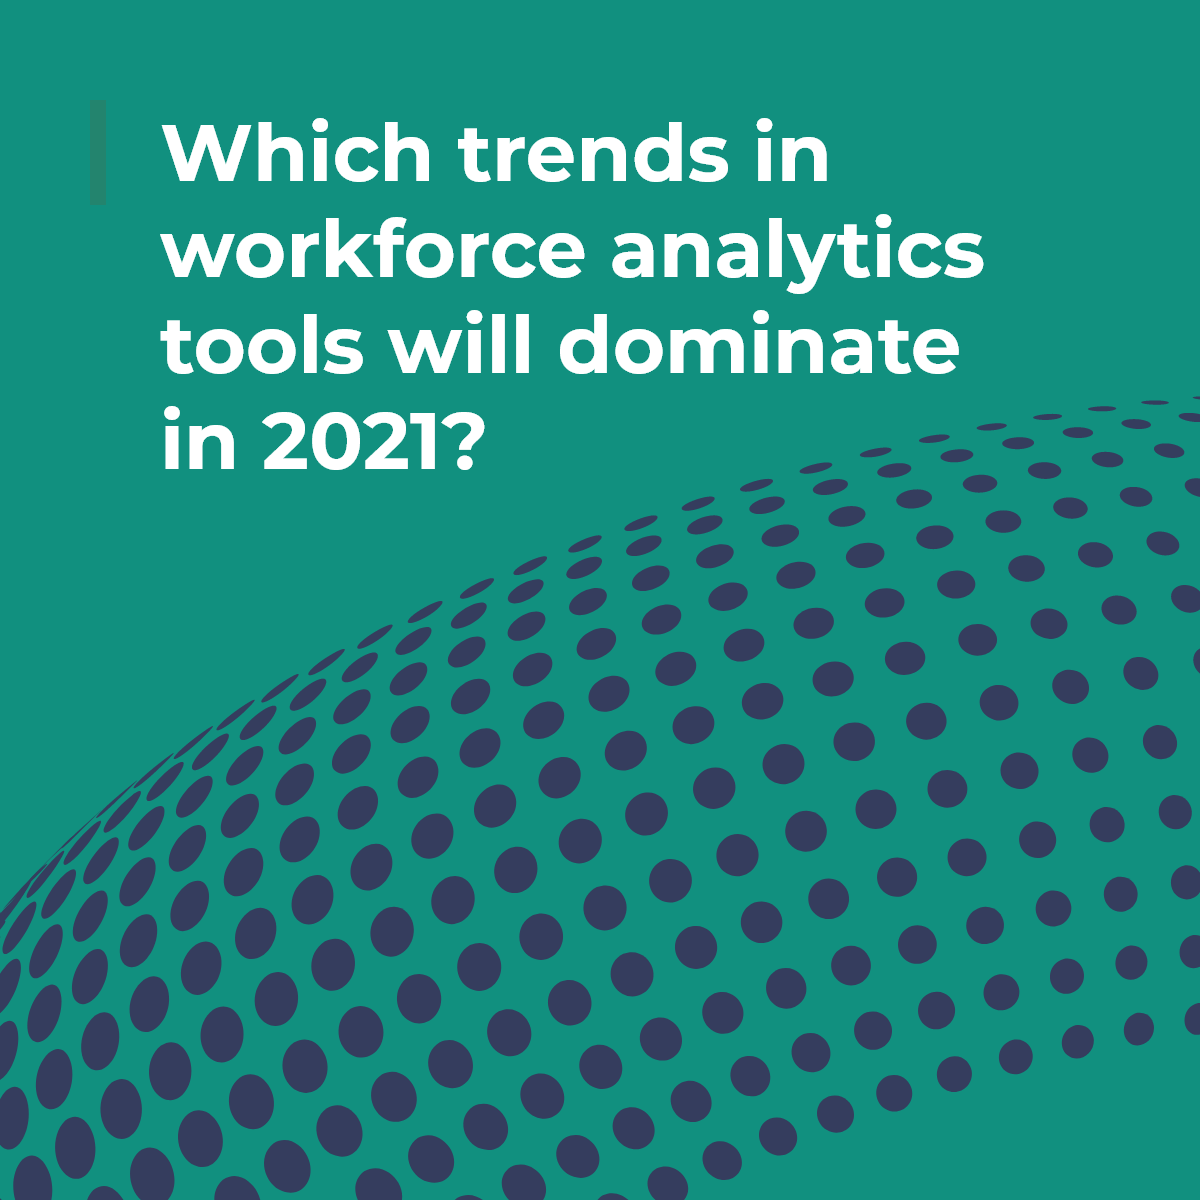 Which trends in workplace analytics tools will dominate in 2021?